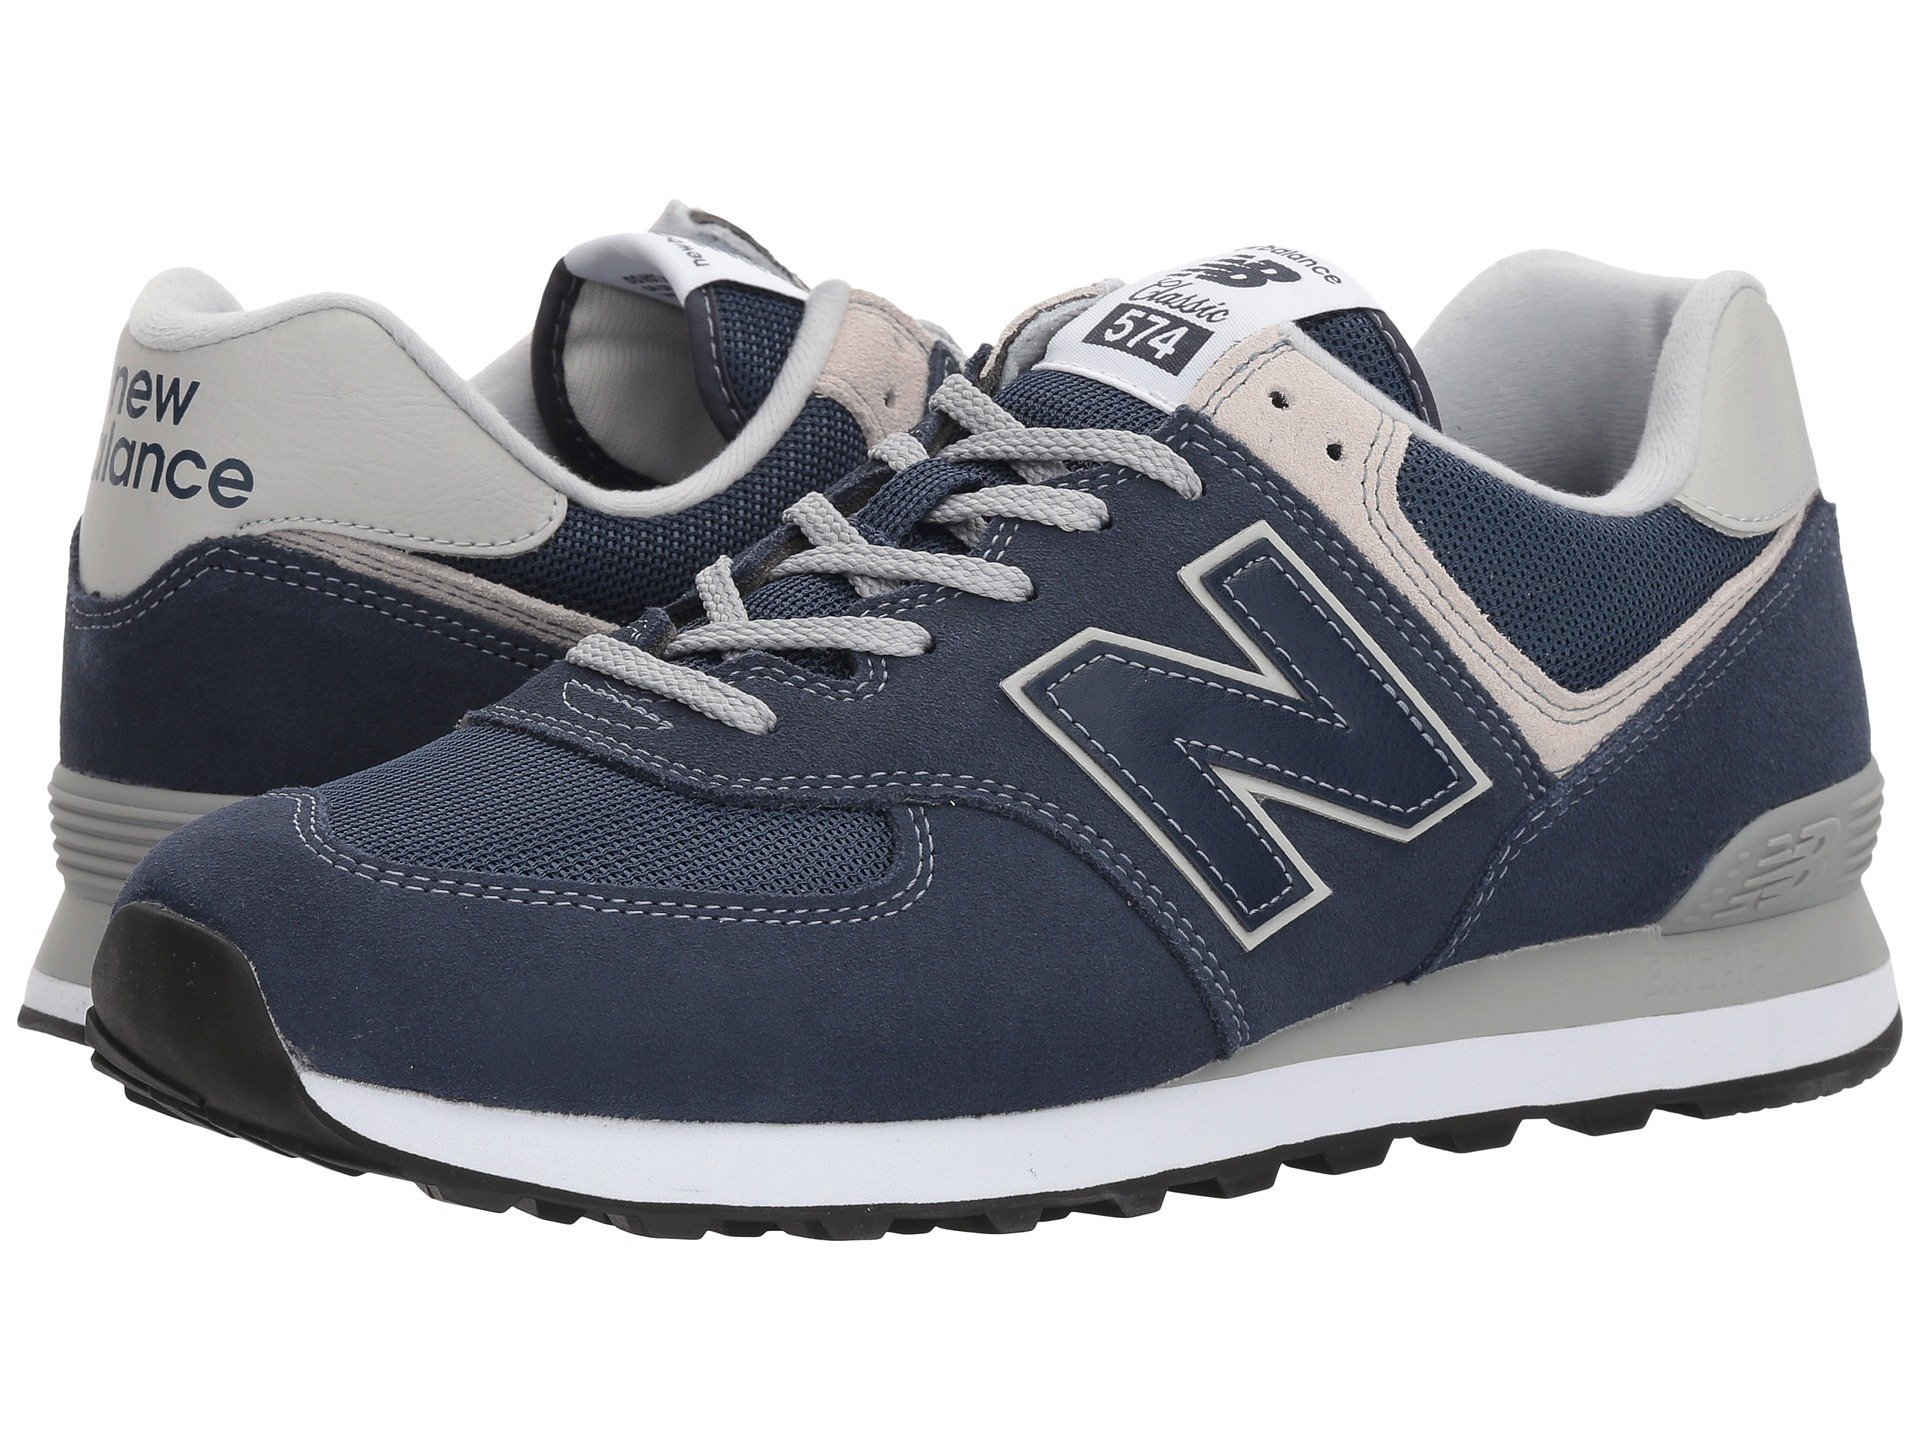 new balance shoes for men 7700k socket